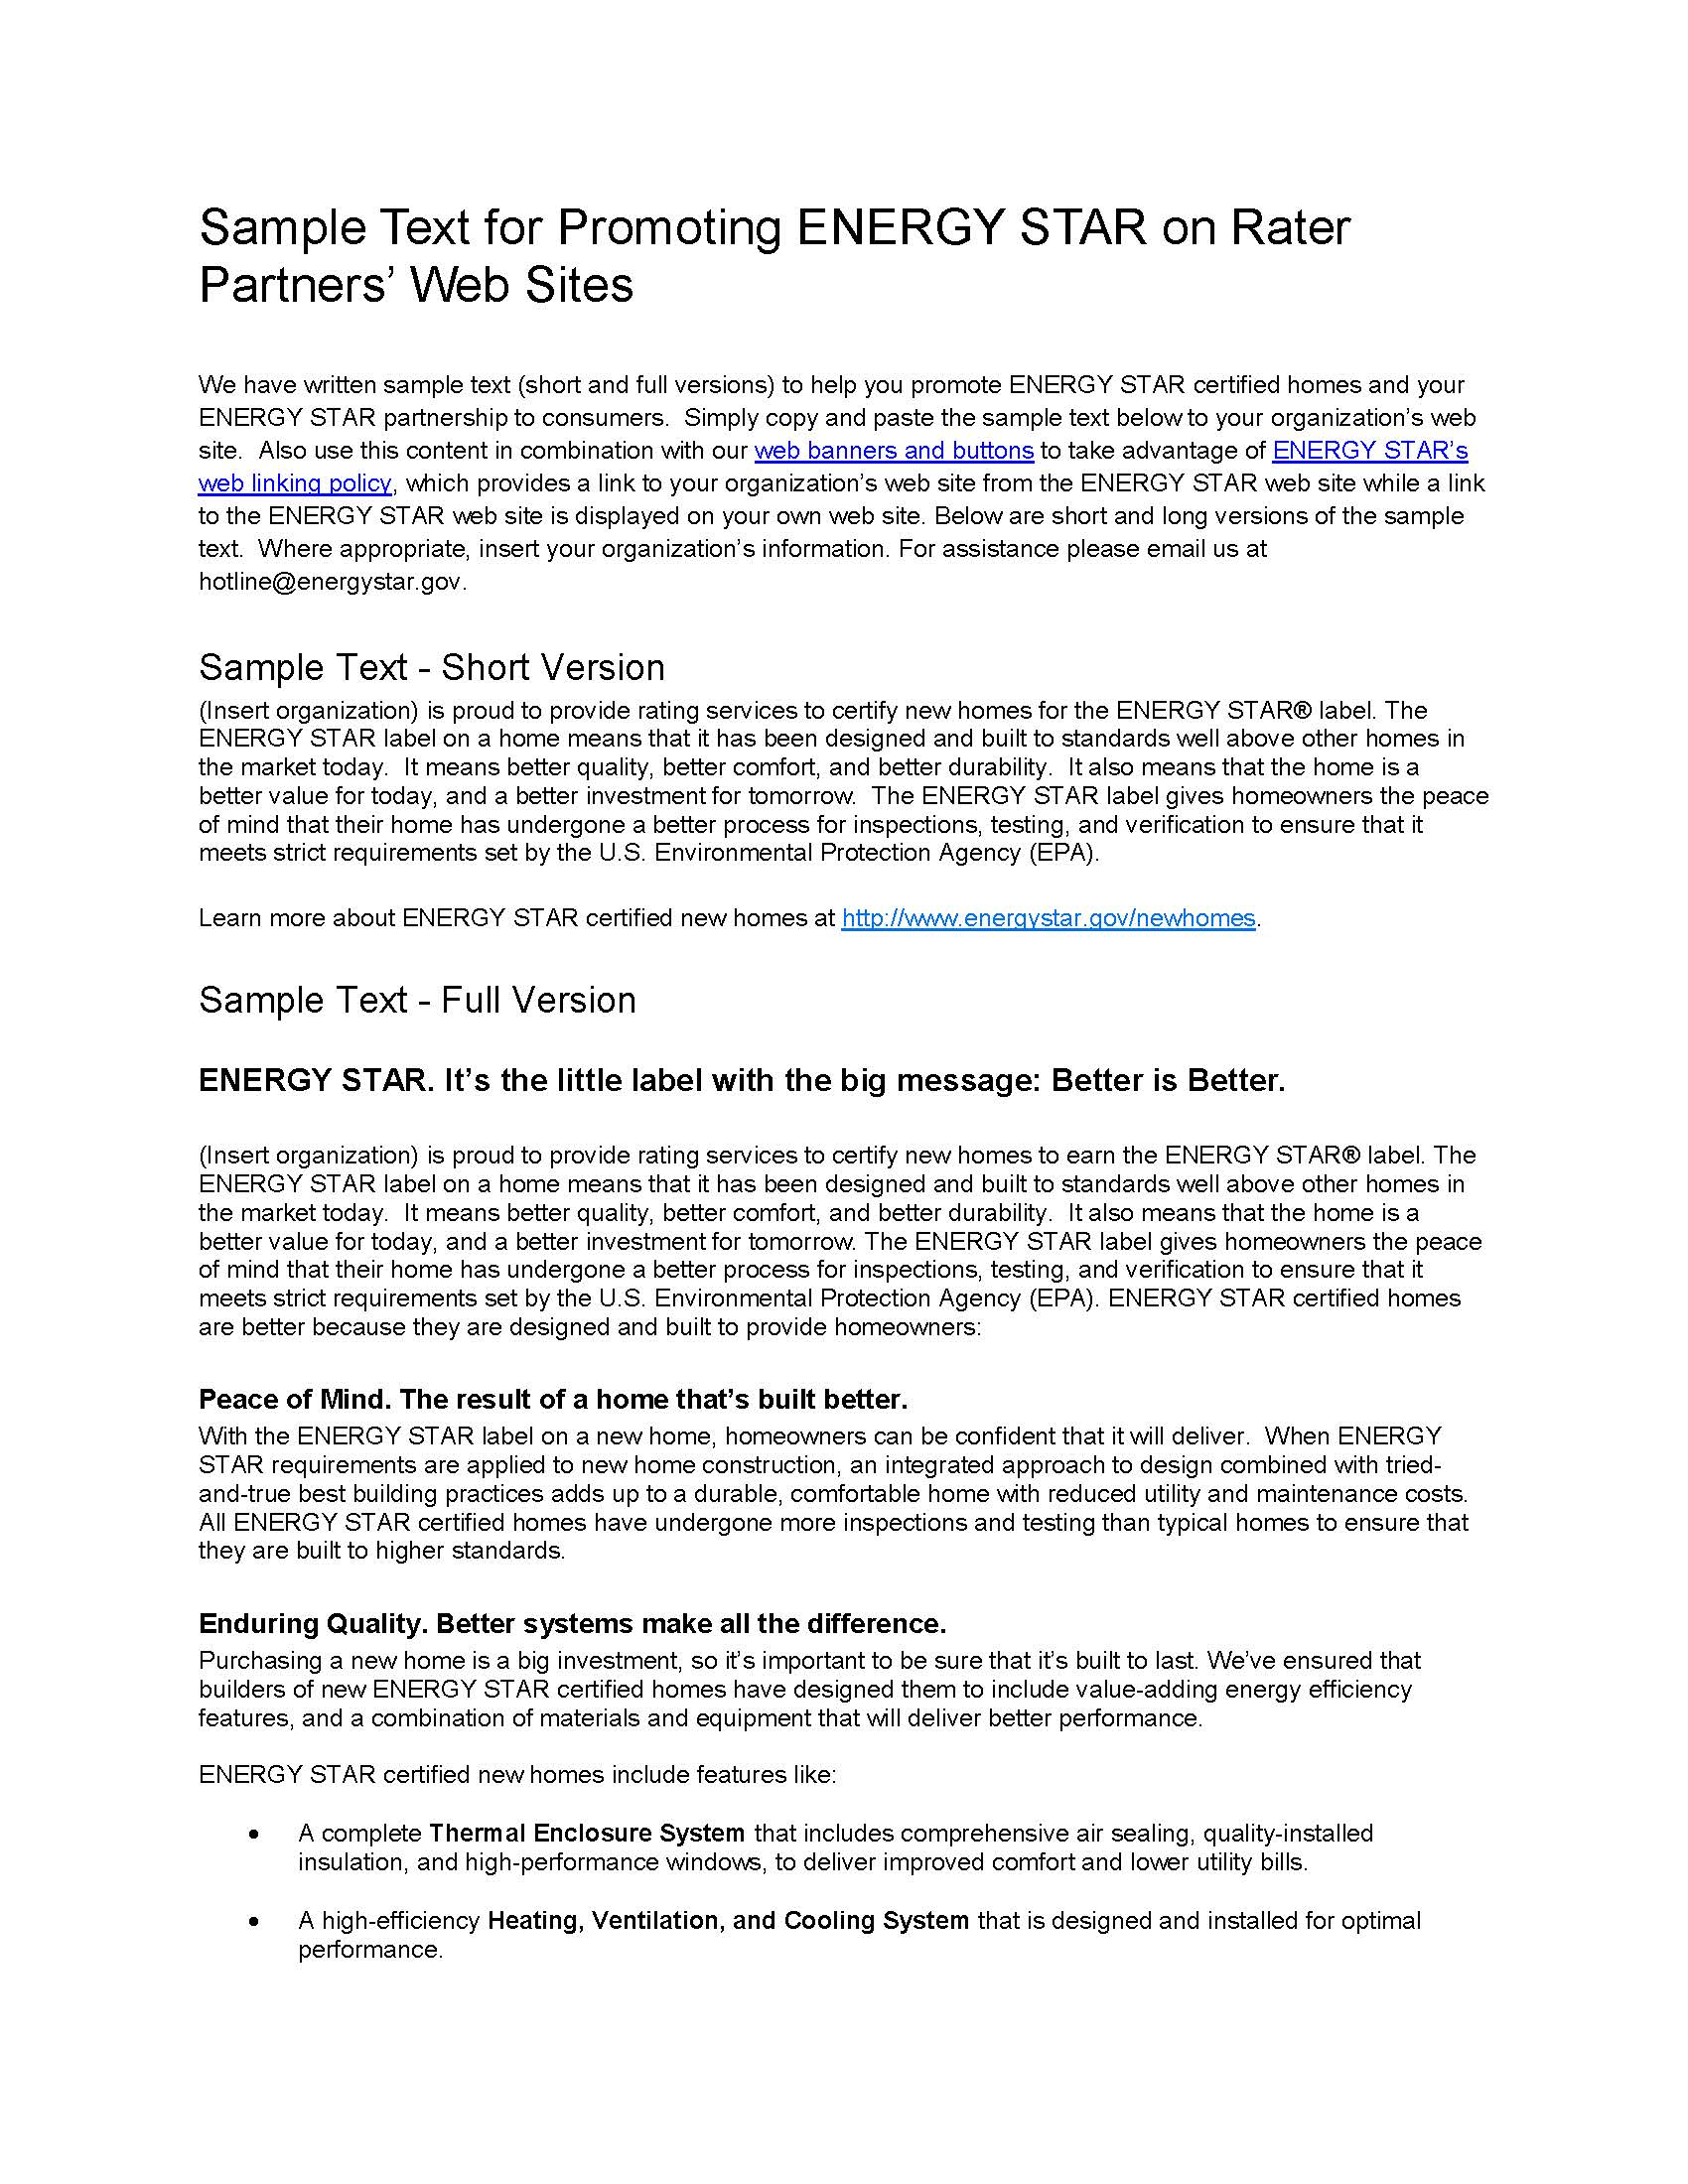 ENERGY STAR Homes Web Linking Sample Text - Verification Organizations